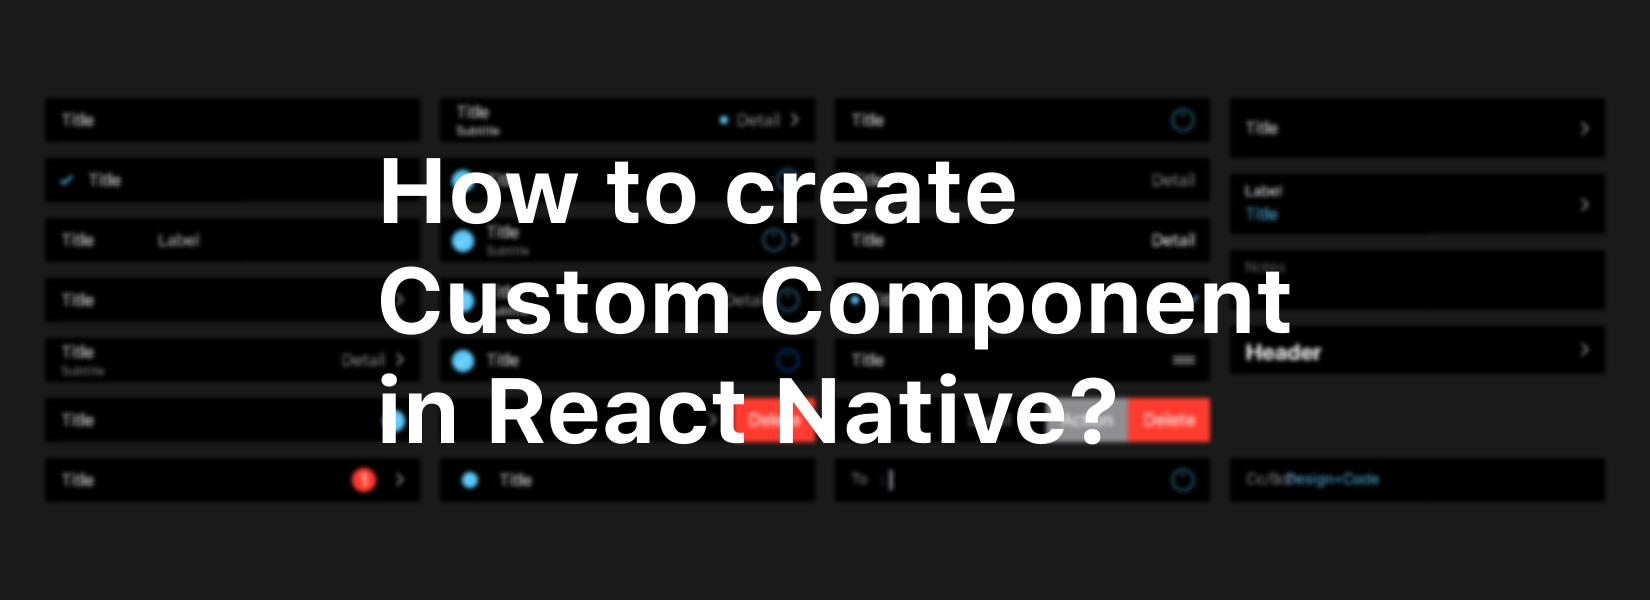 How to create Custom Component in React native?